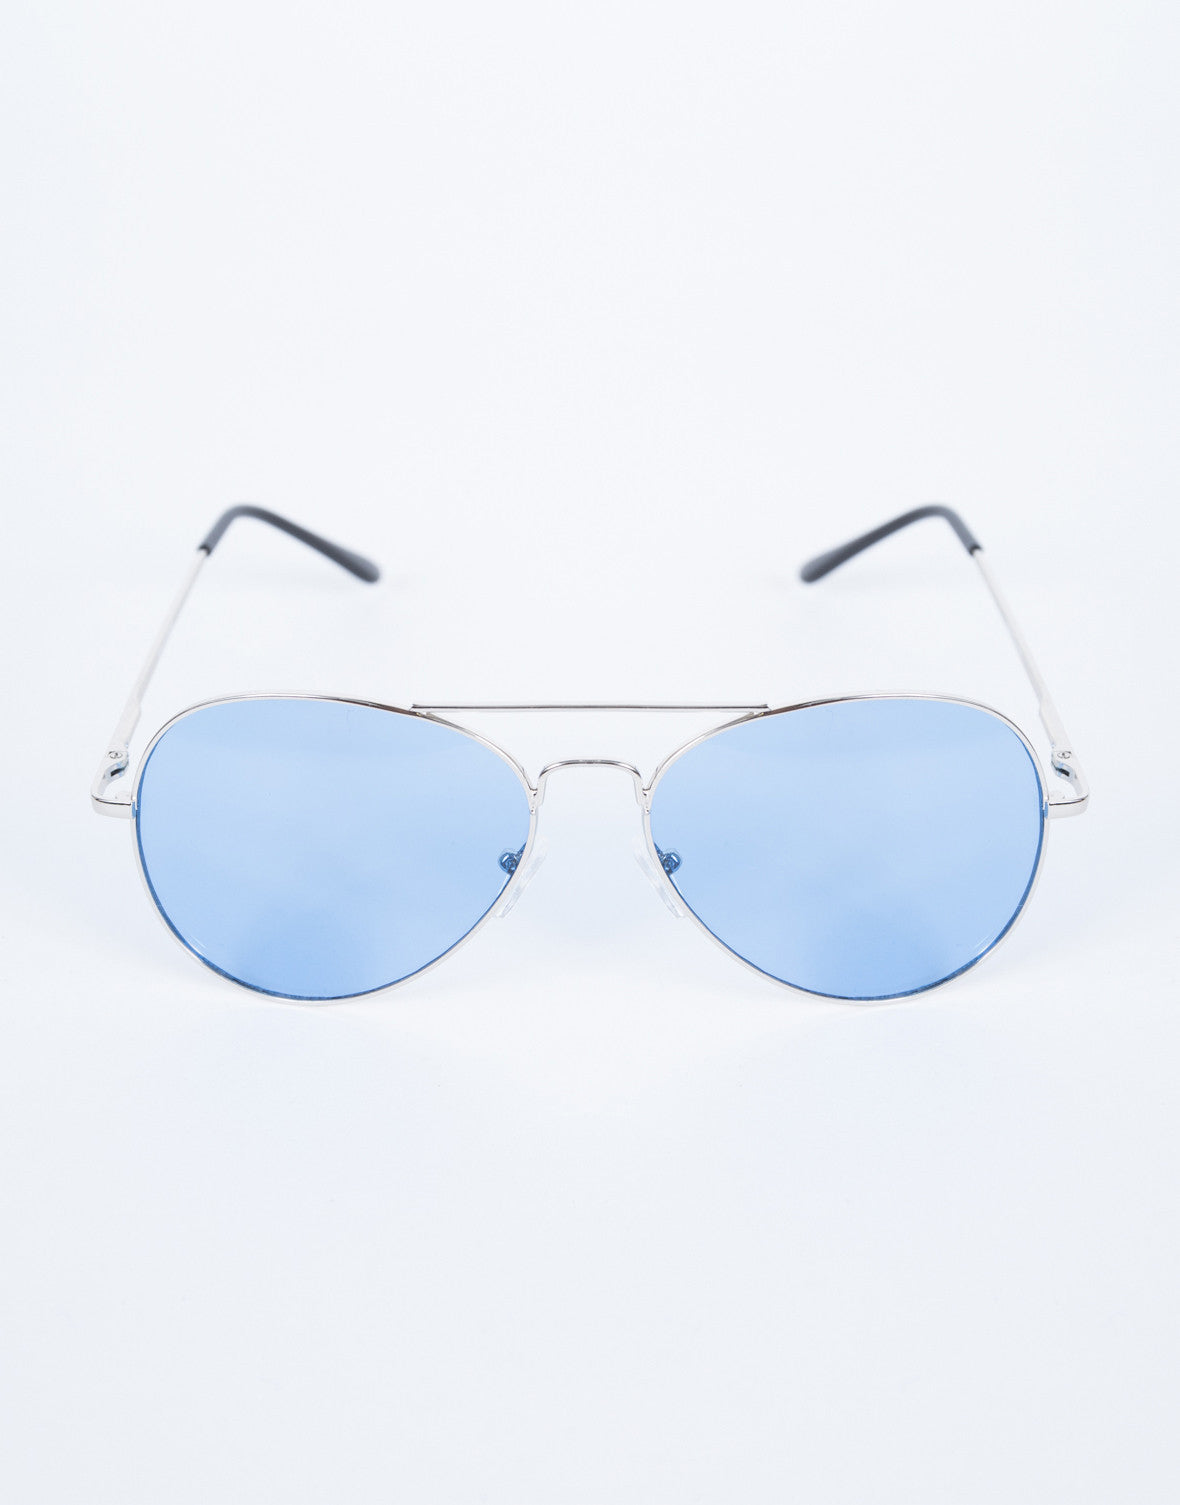 Blue Cooled Down Aviators - Top View